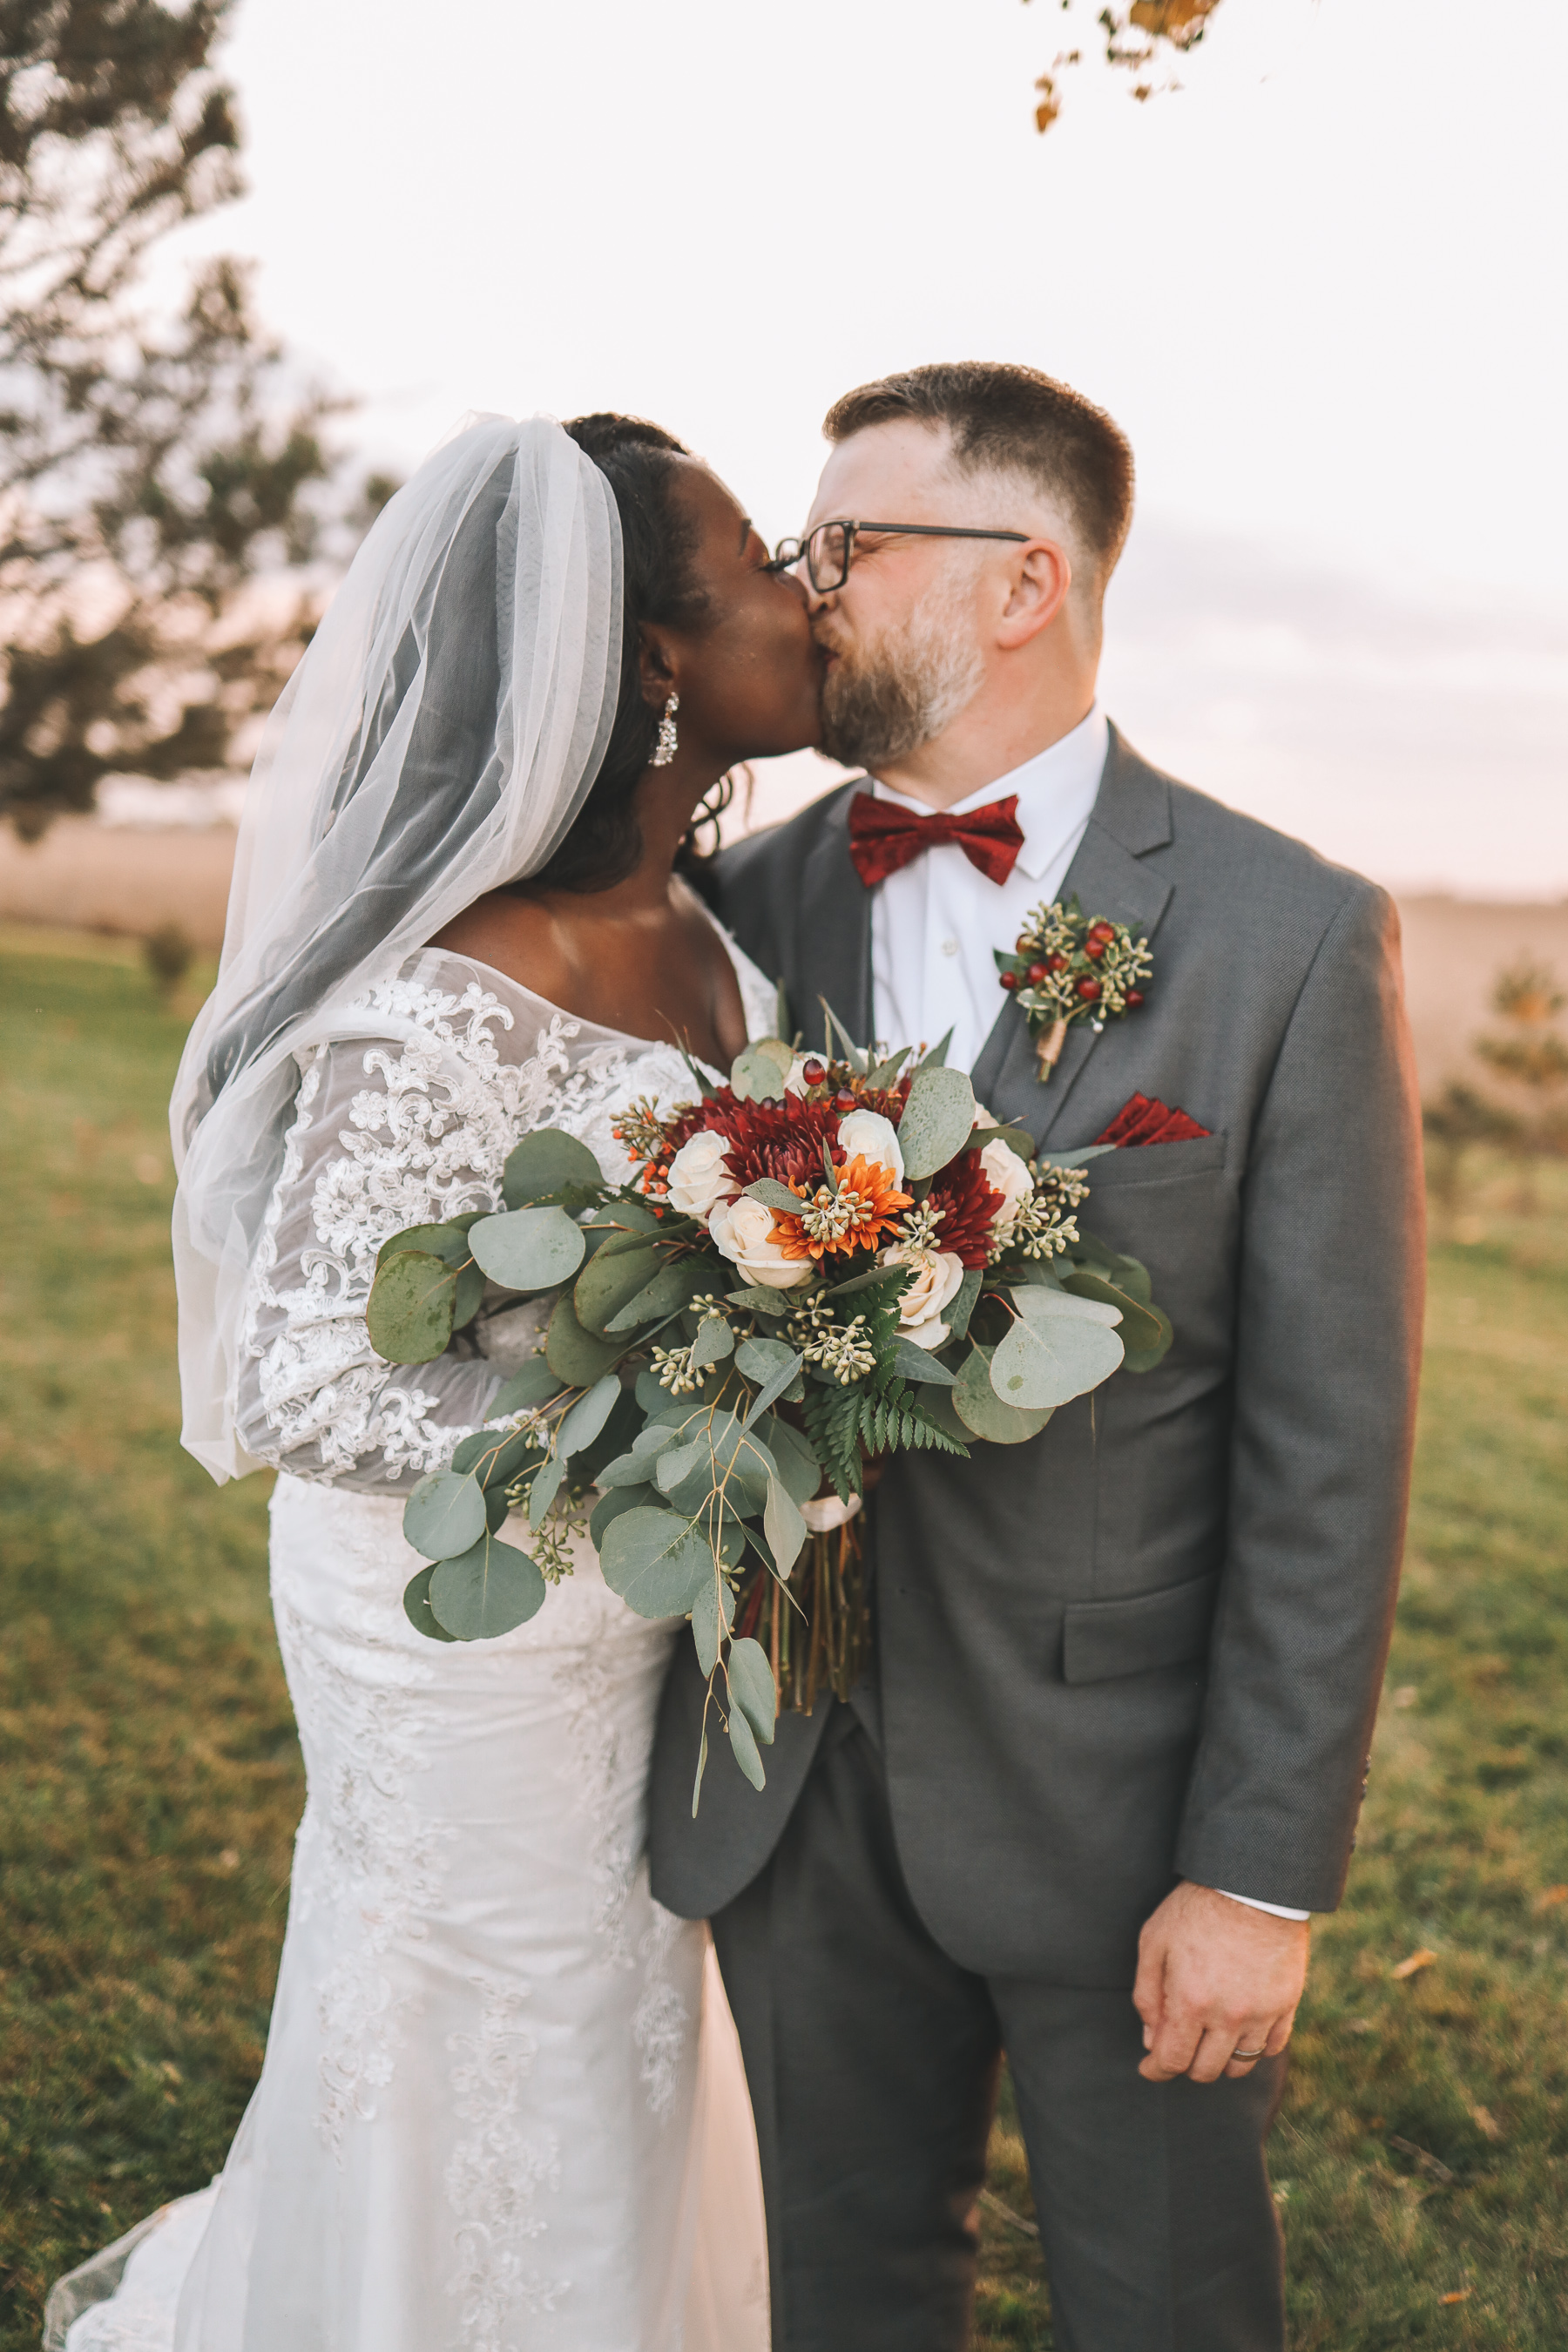 getting married during a pandemic